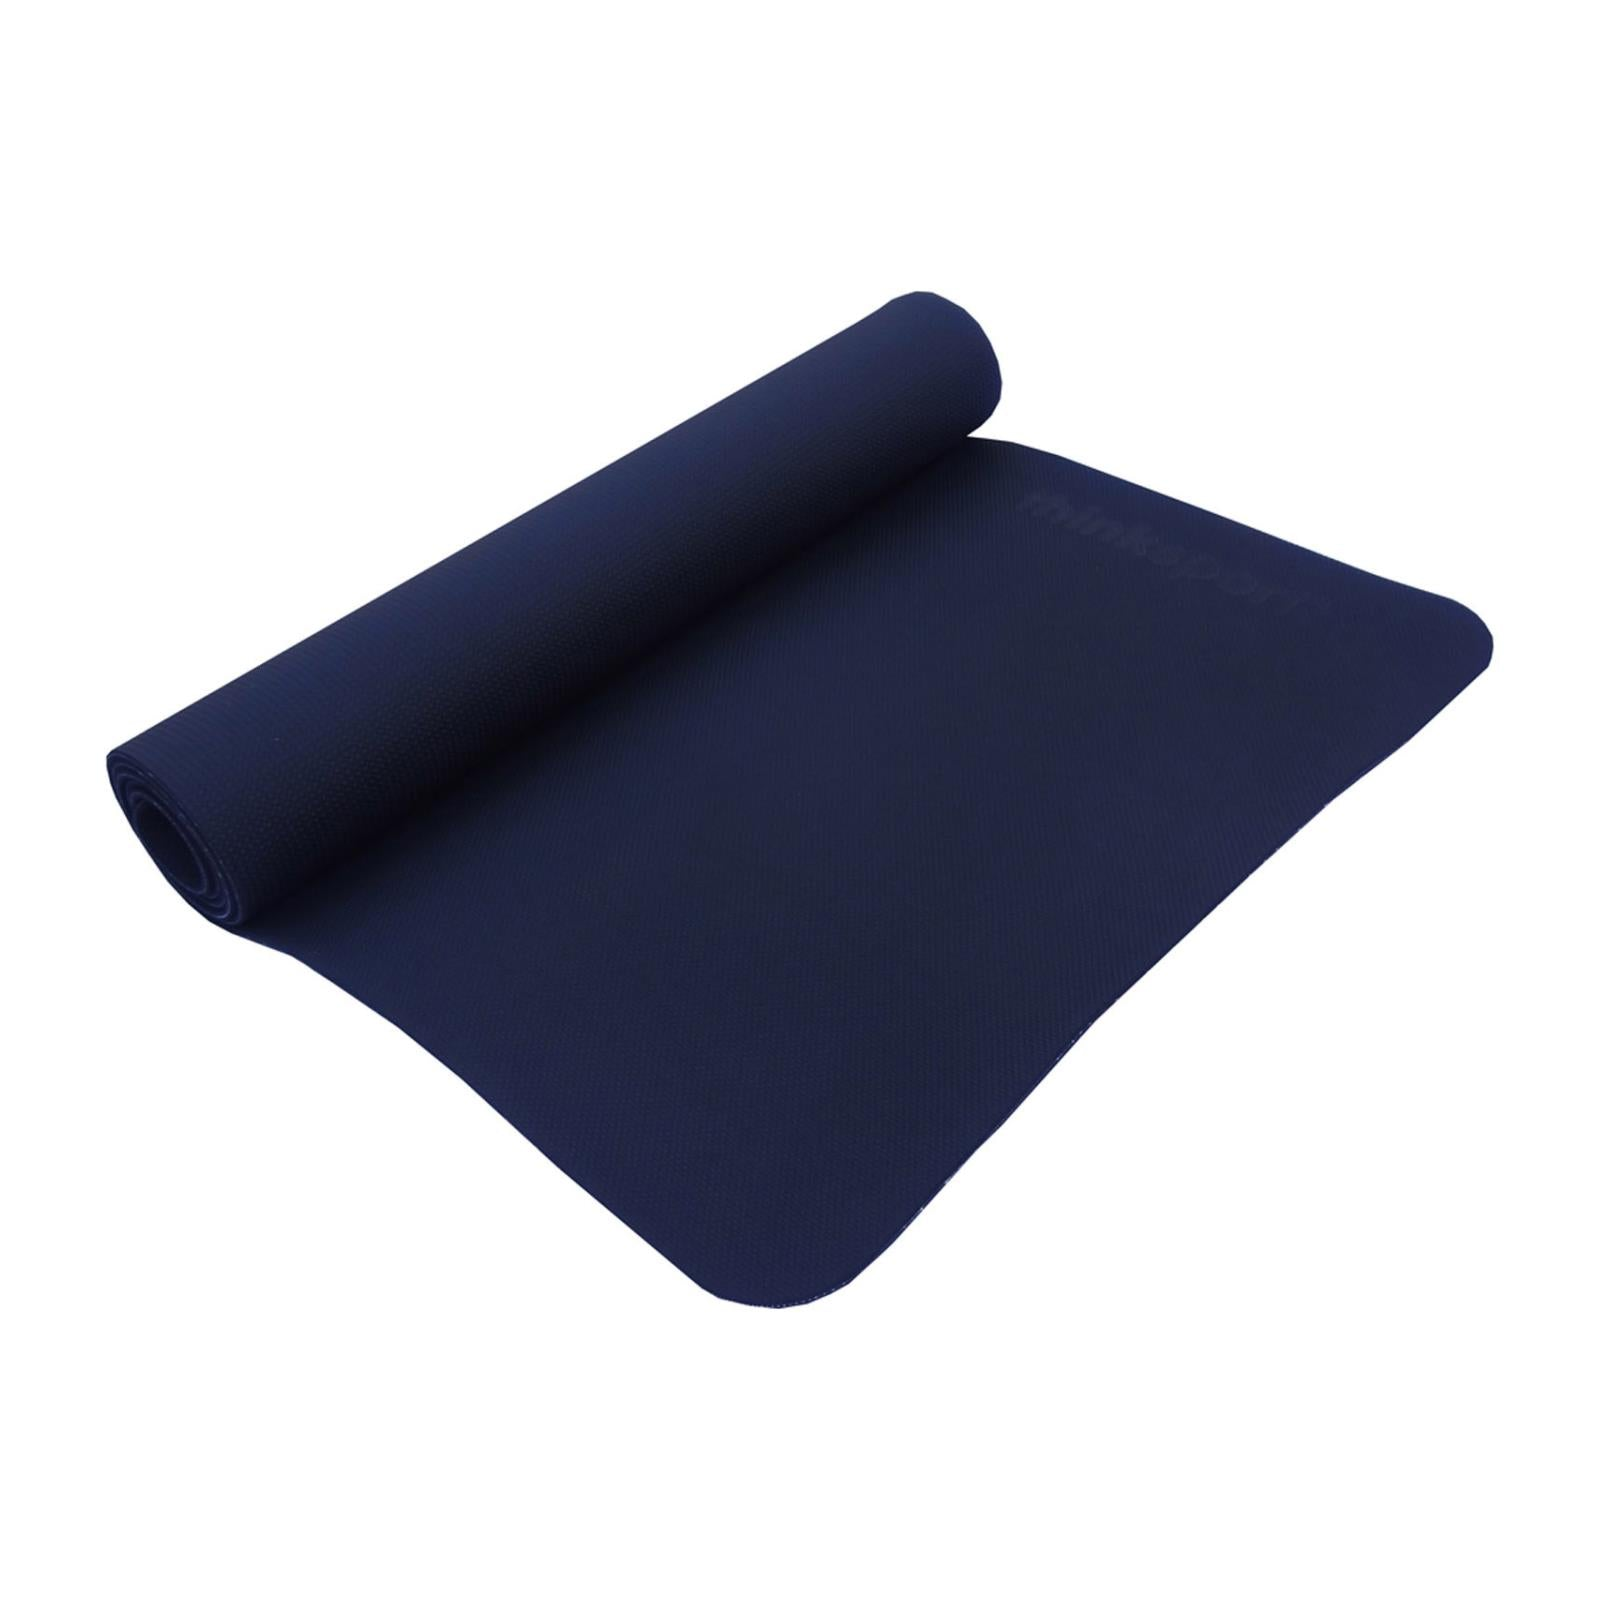 Buy Thinksport Yoga Mat - Black/Black - Yoga from Veroeco.com